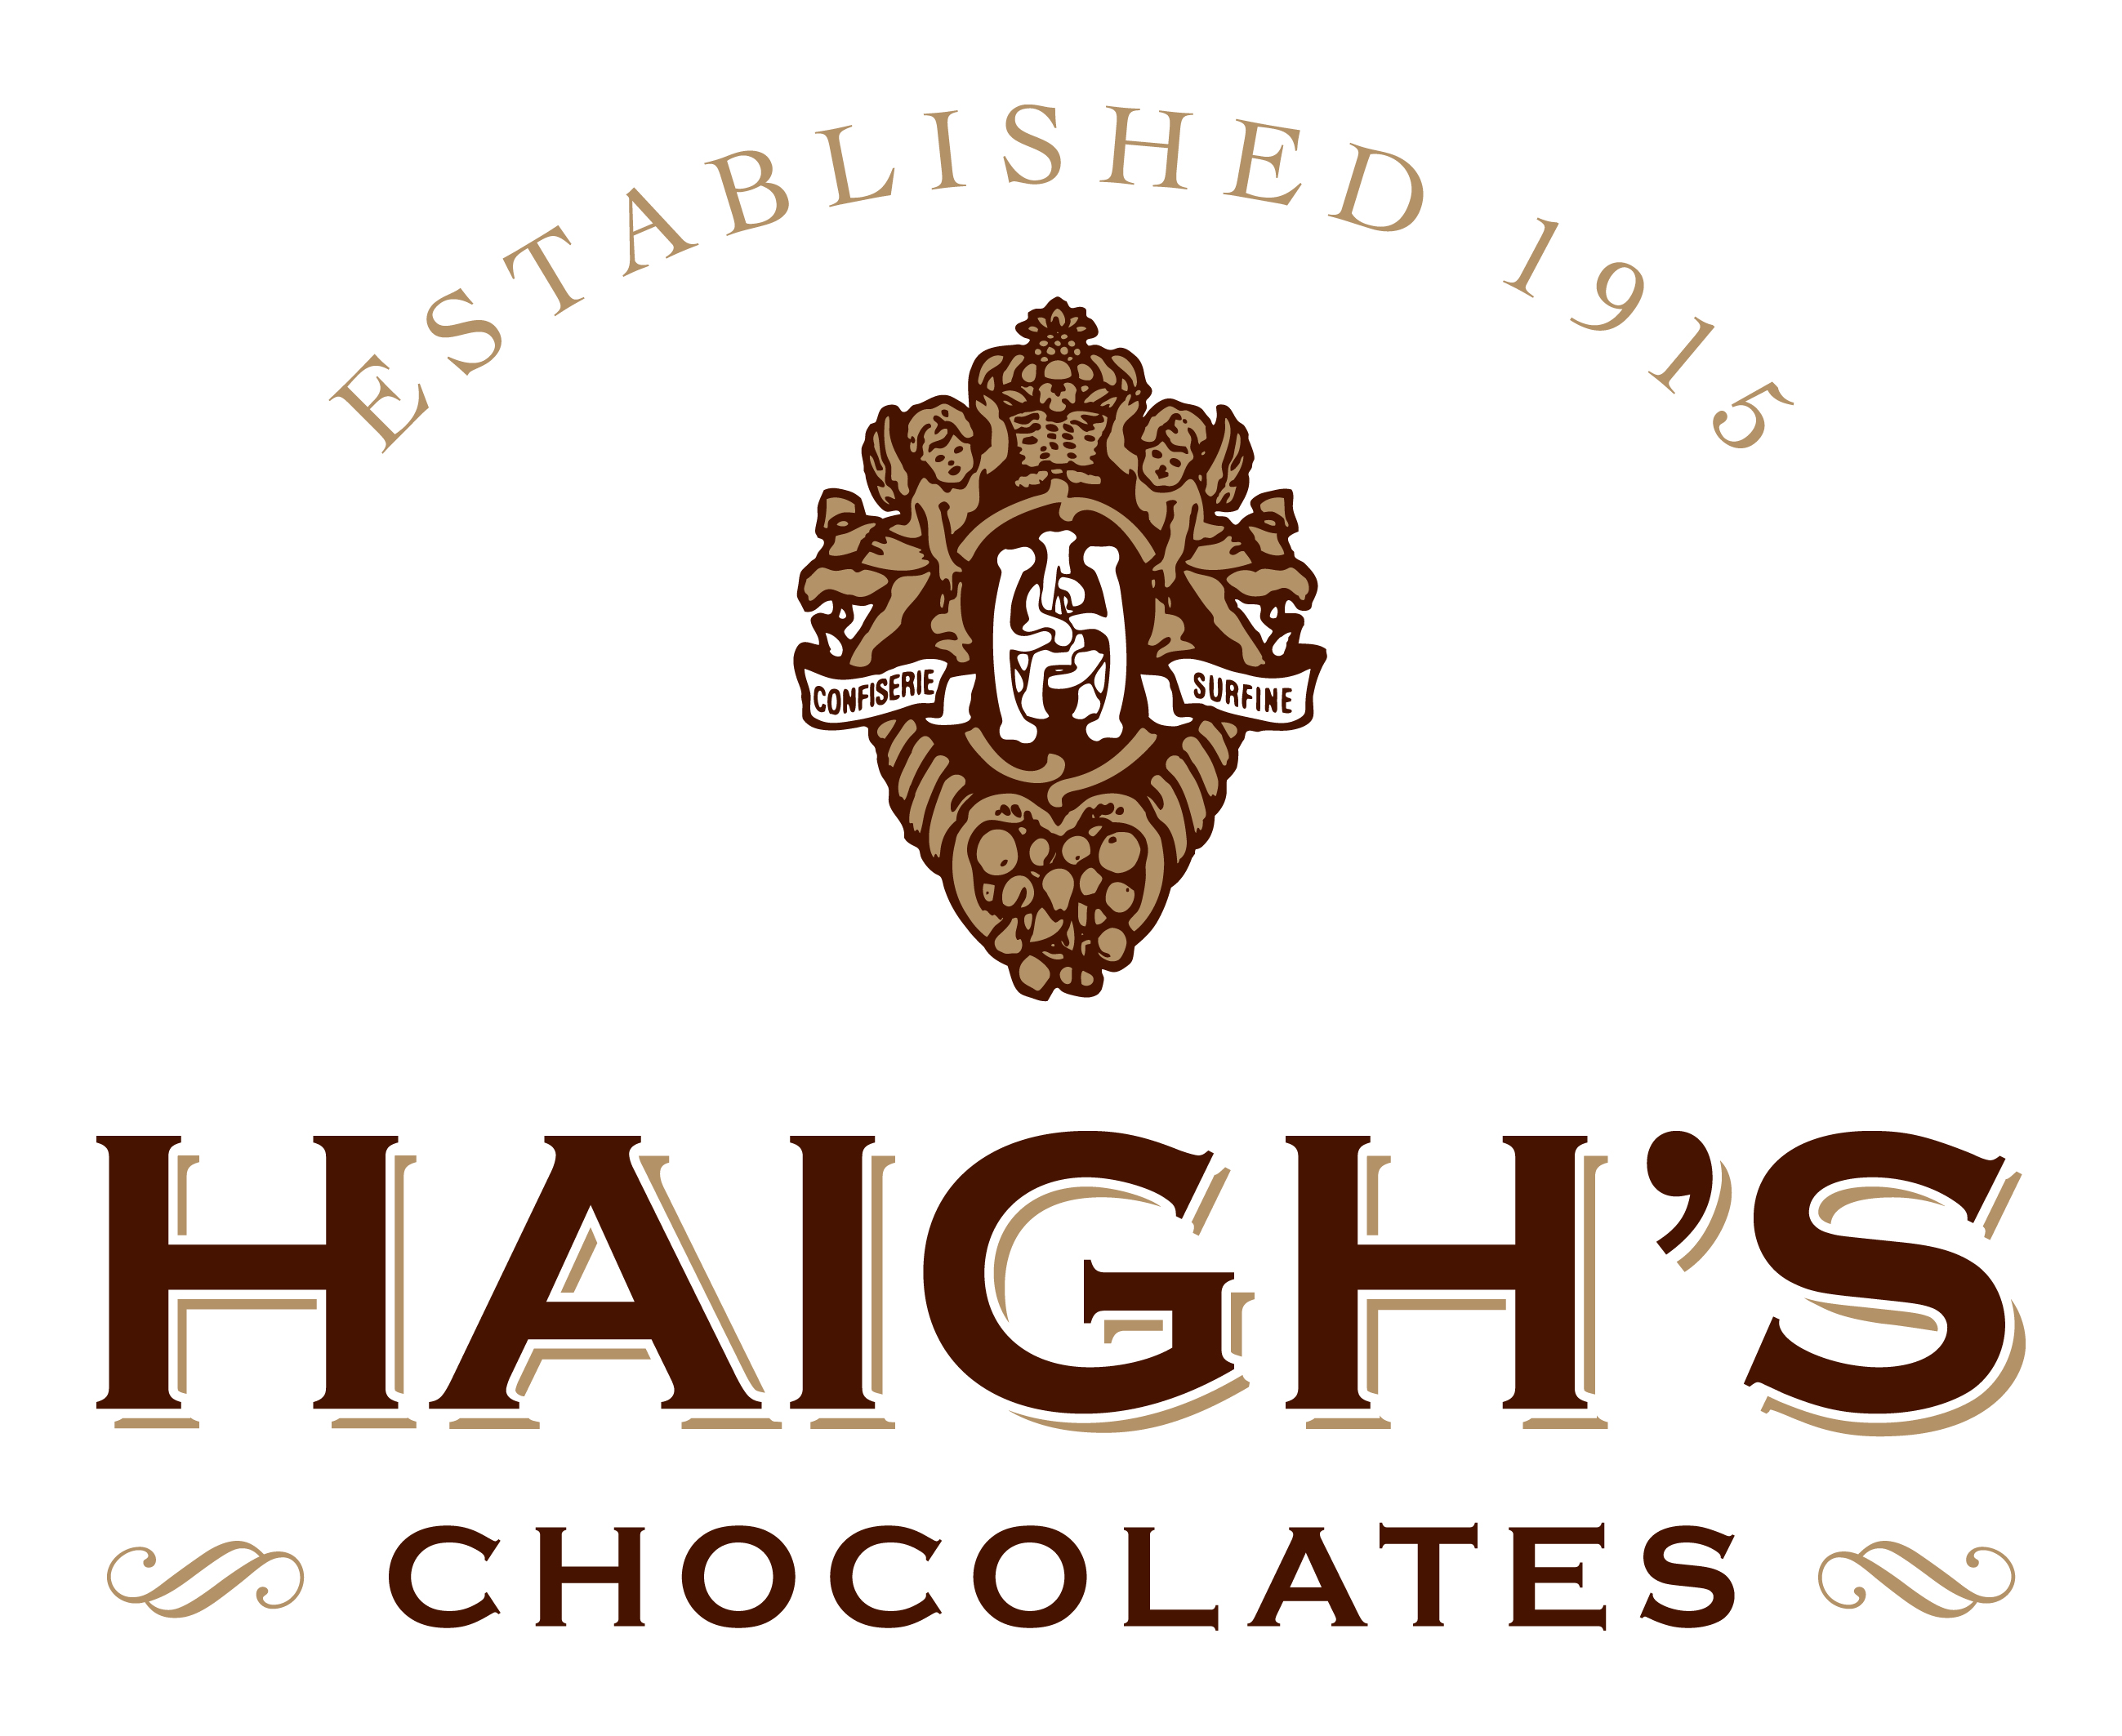 Pet Insurance Companies >> Haigh's Chocolate Reviews - ProductReview.com.au